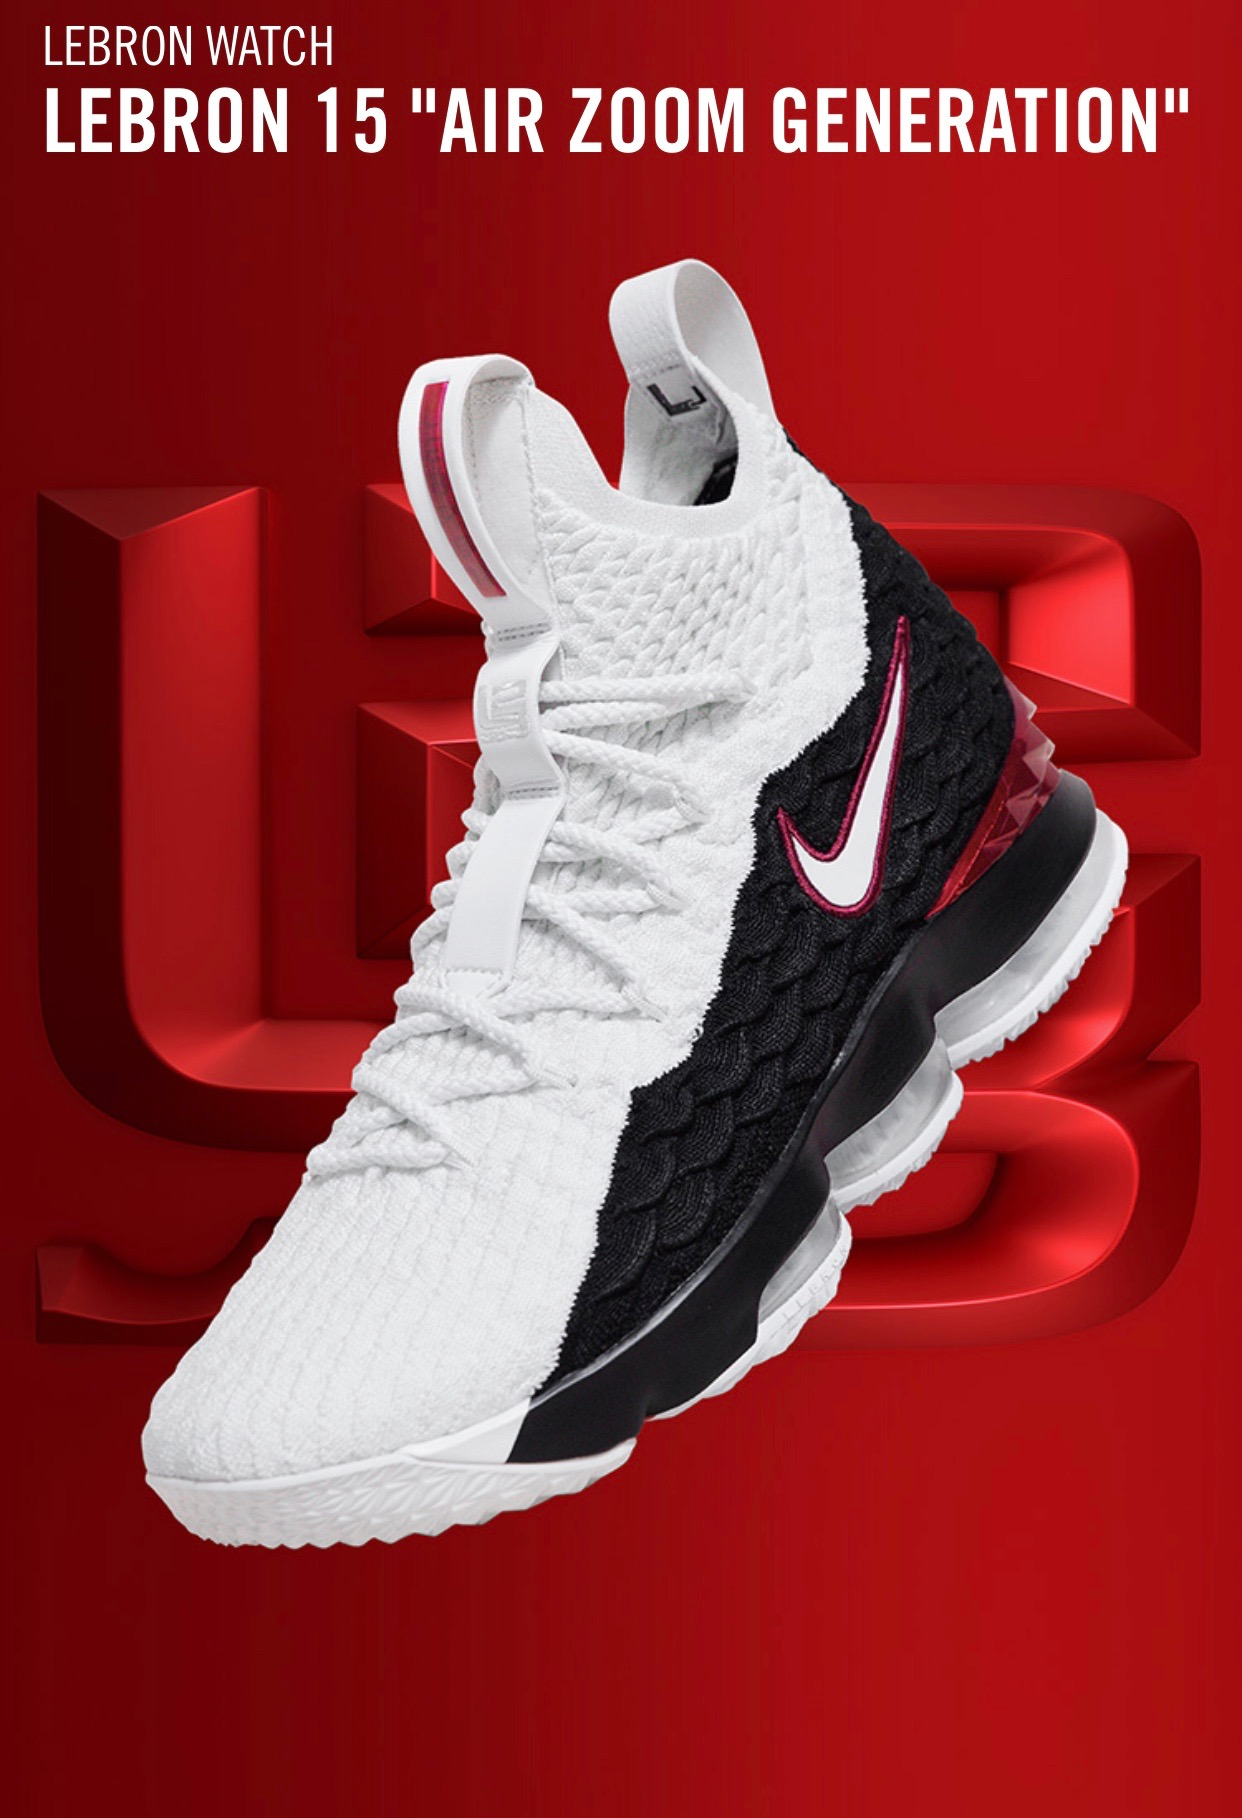 new arrival c68ac 9b921 LeBron James Rocked the Nike LeBron 15 'Air Zoom Generation ...